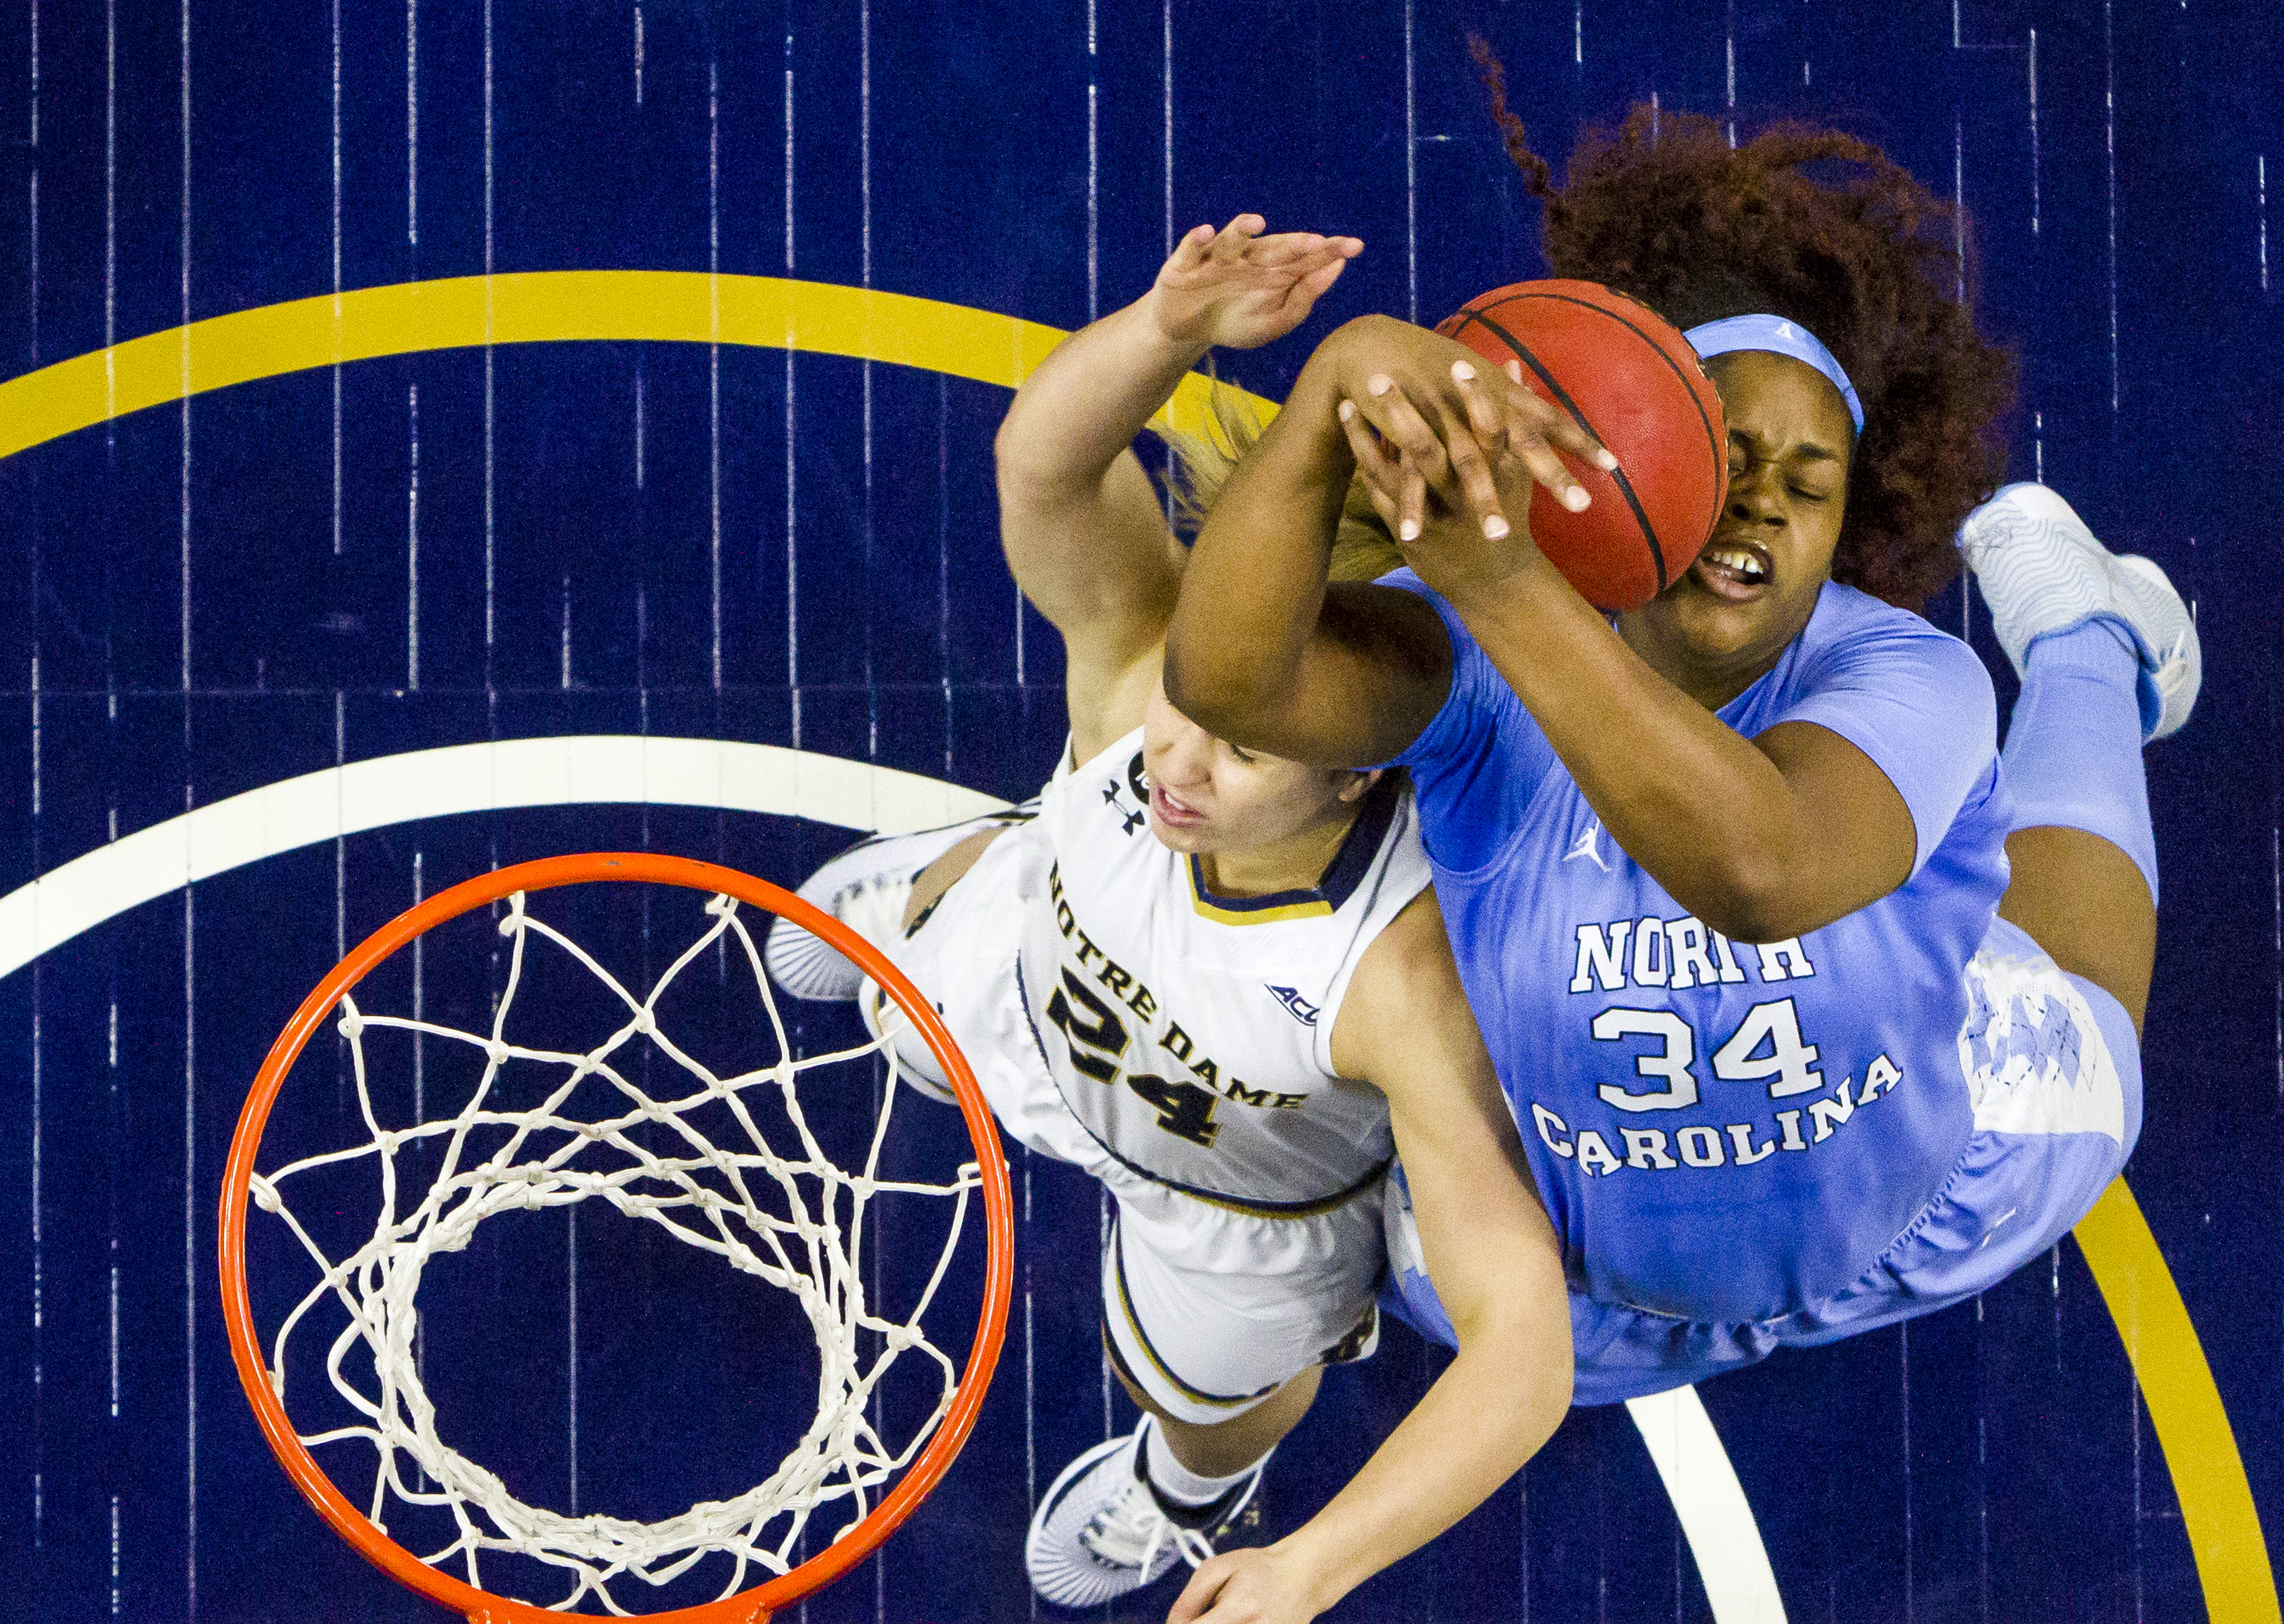 North Carolina's Xylina McDaniel (34) competes for a rebound with Notre Dame's Hannah Huffman (24) during the second half of an NCAA college basketball game on Sunday, Jan. 10, 2016, in South Bend, Ind. (AP Photo/Robert Franklin)